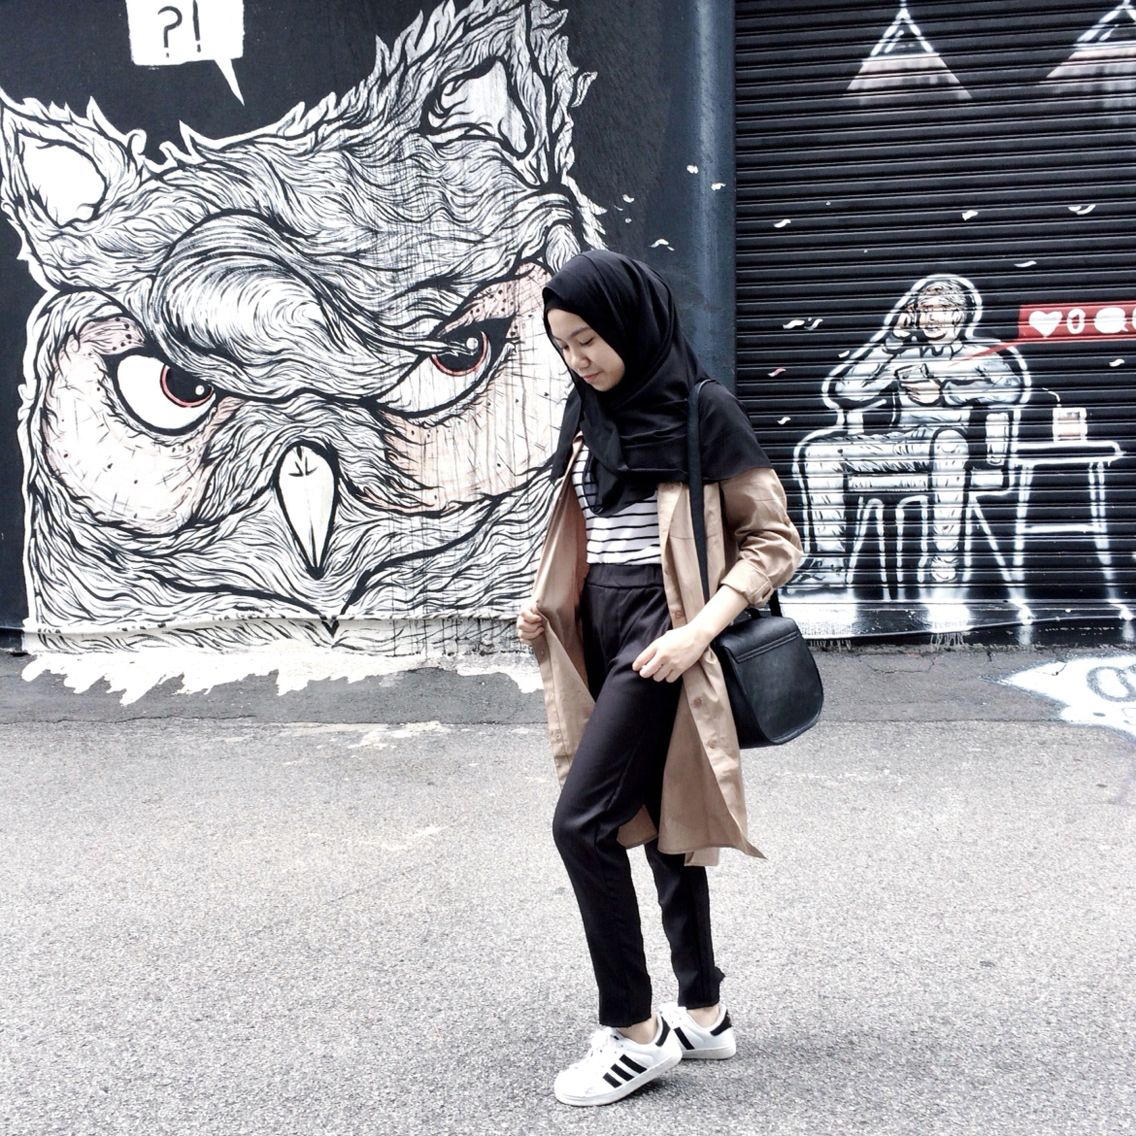 Malaysian Girls Named Hijab Hipster Hijabster Photo By Kay Tendencies Tshirt Off Line Hitam M Kayniss In Instagram